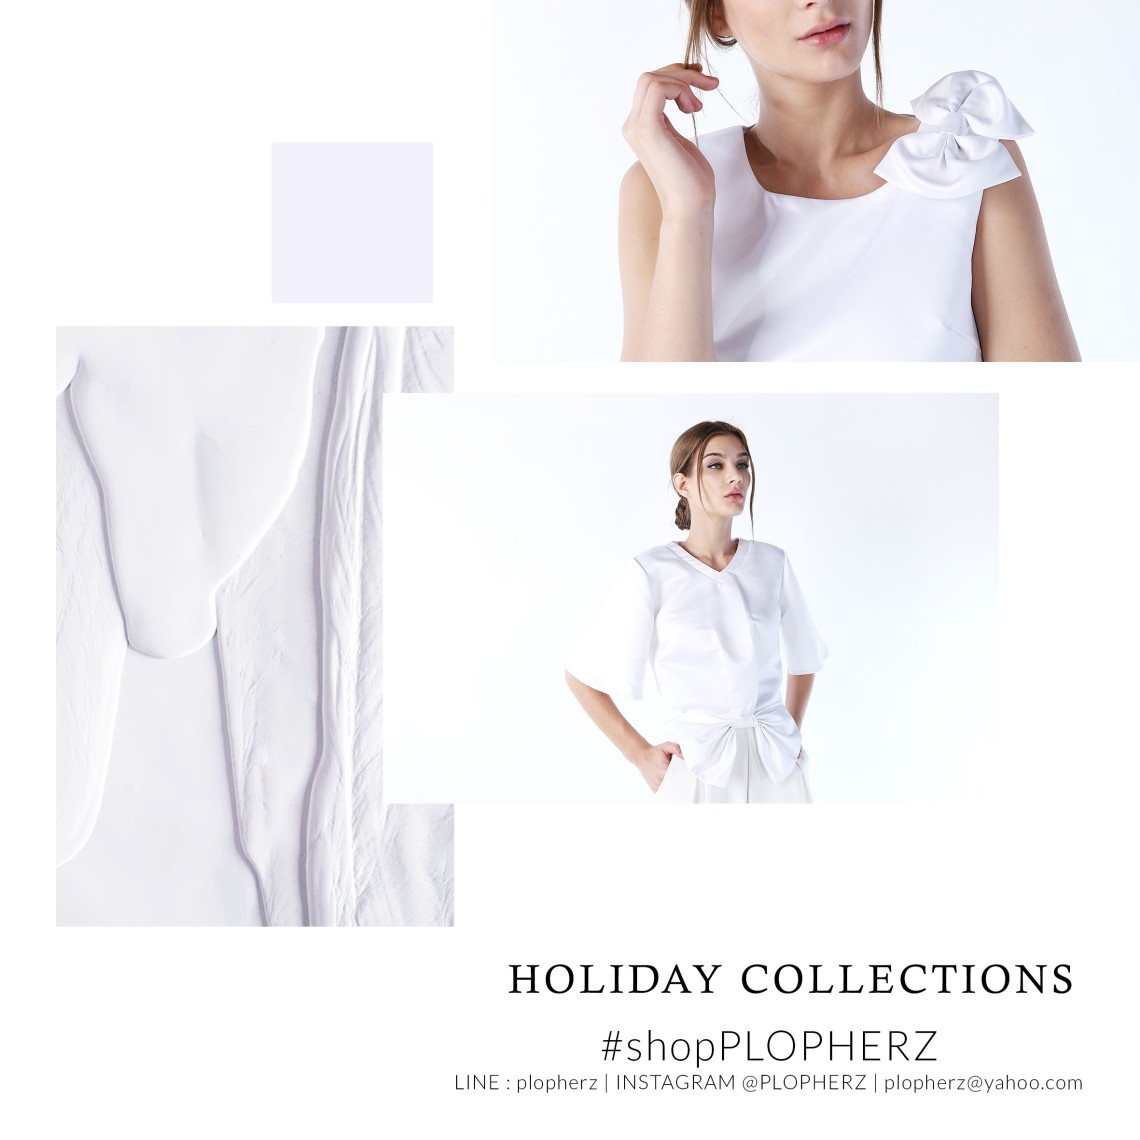 holiday collections moodboard WHITE